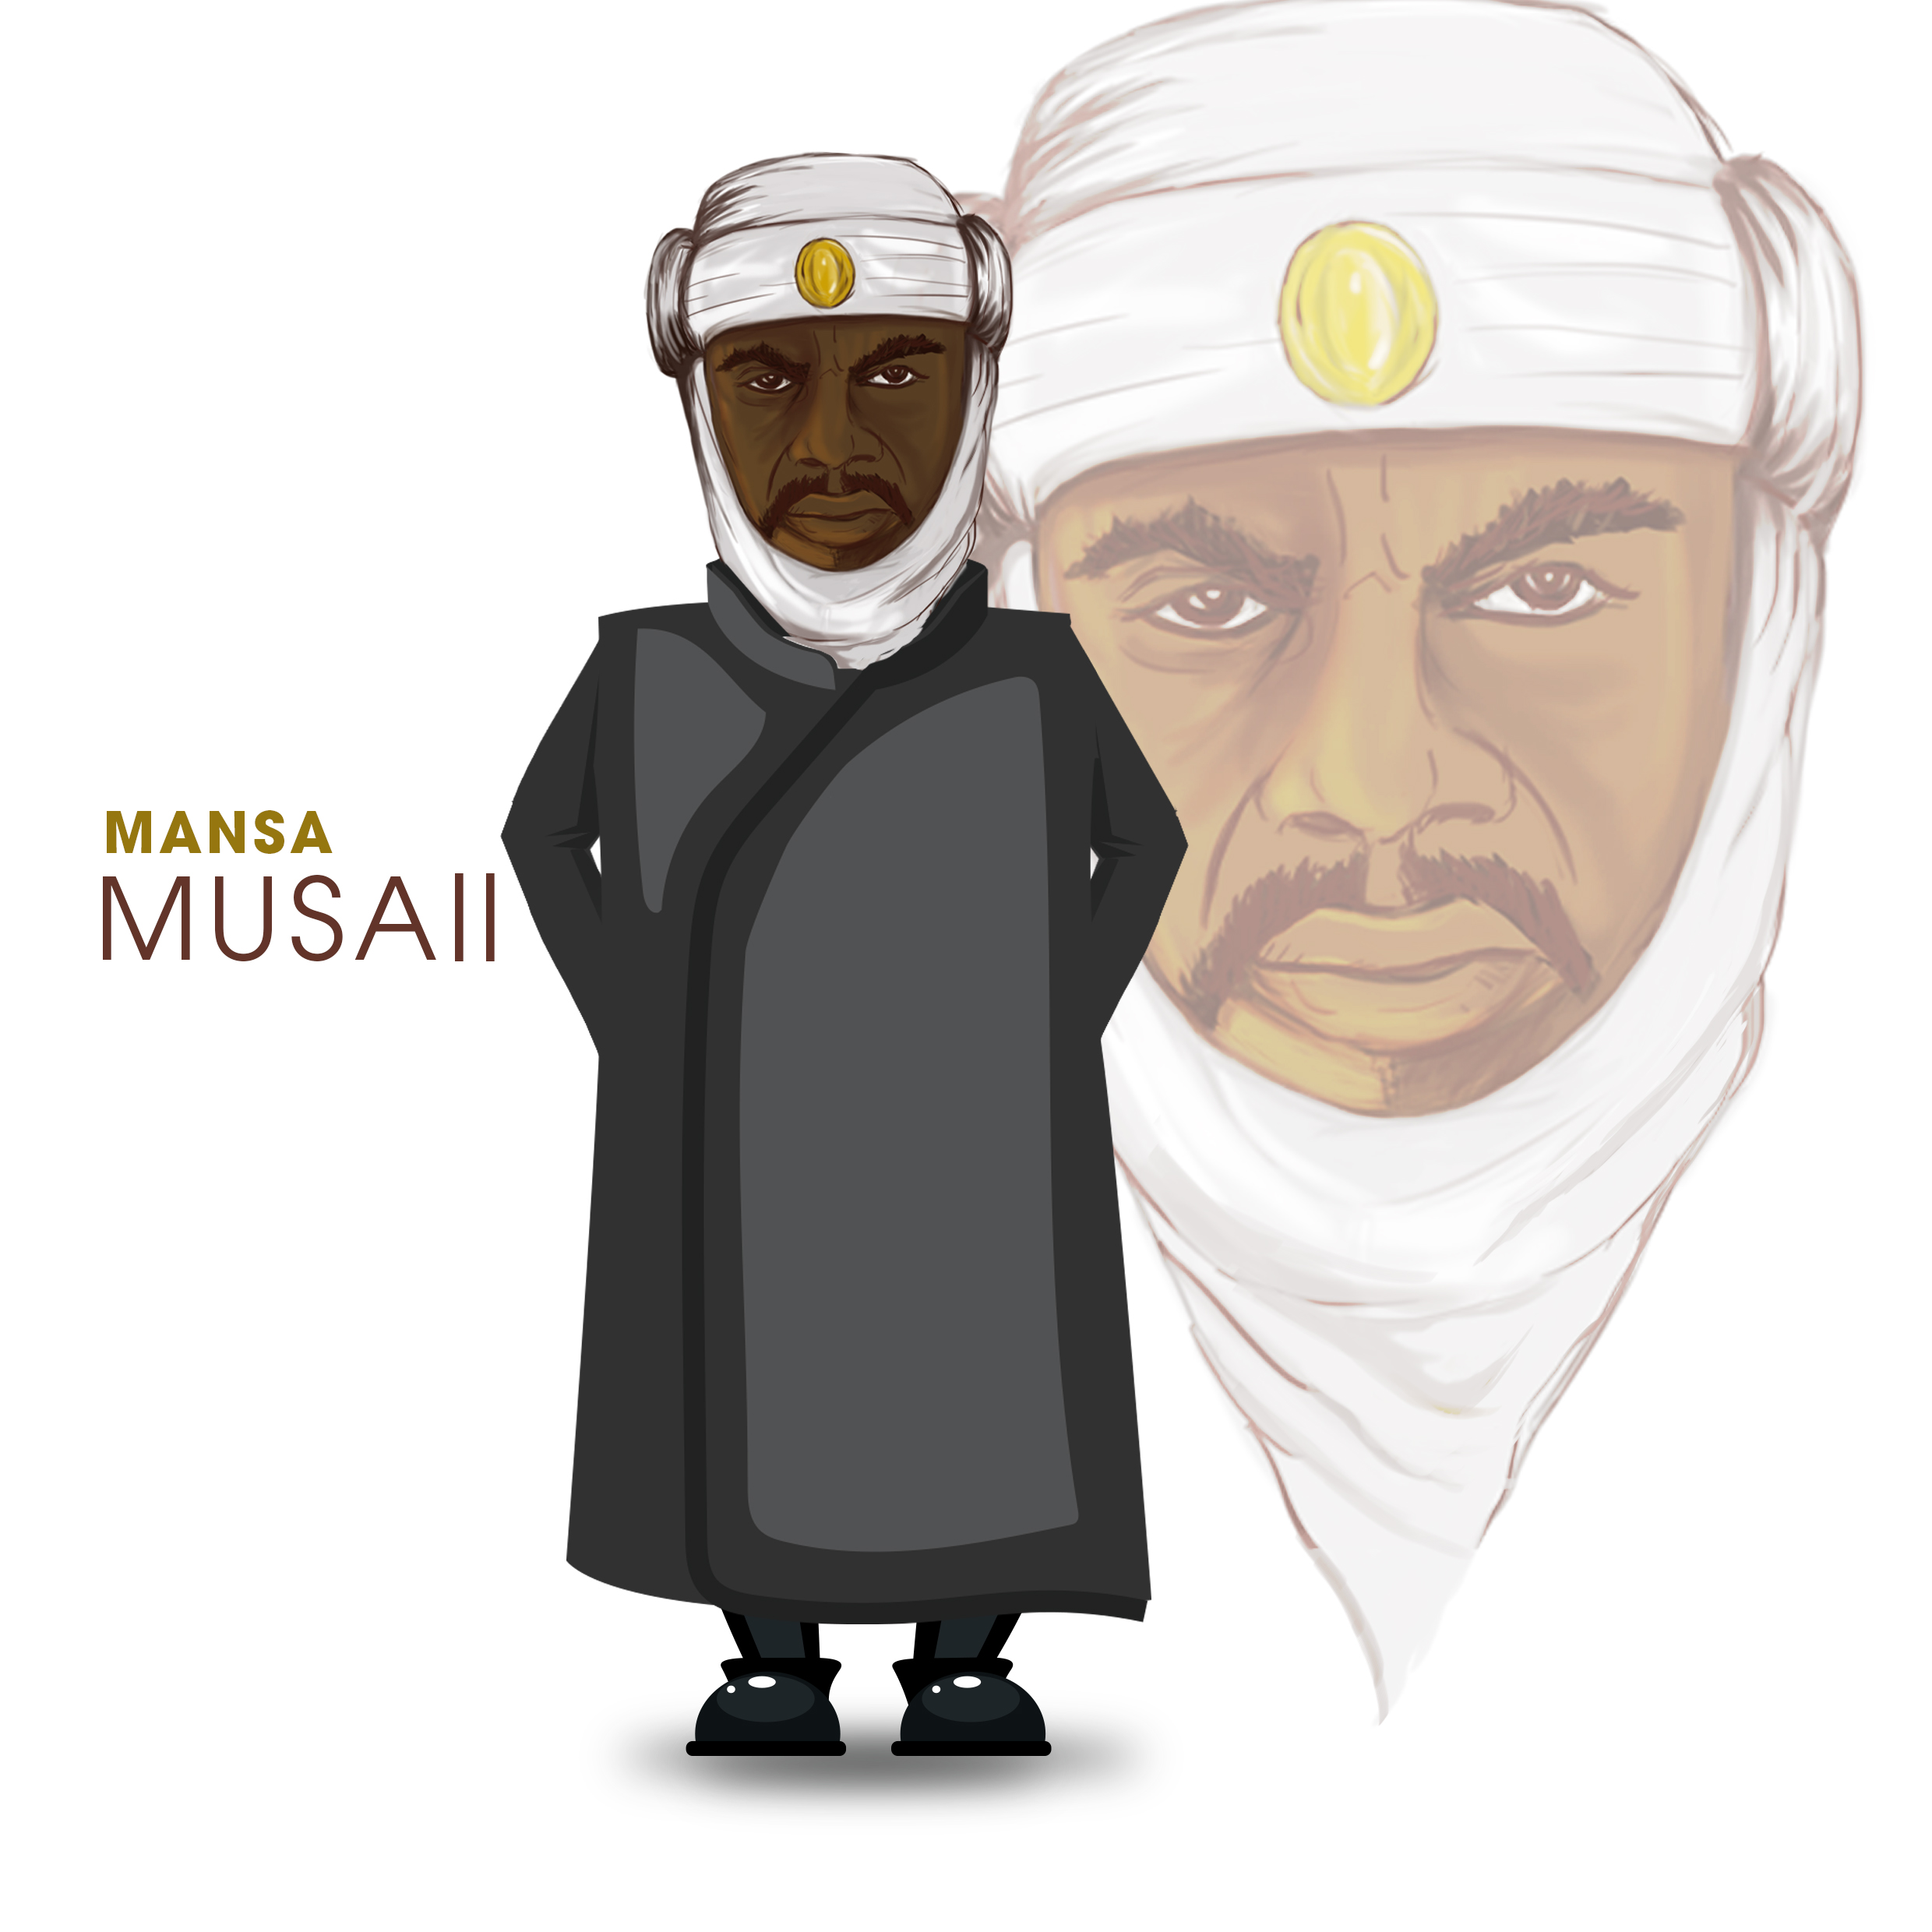 Mansa musa clipart clip transparent download MANSA MUSA II: IN THE LAND OF DEMOCRACY, YOU CAN ALWAYS SPEAK YOUR ... clip transparent download